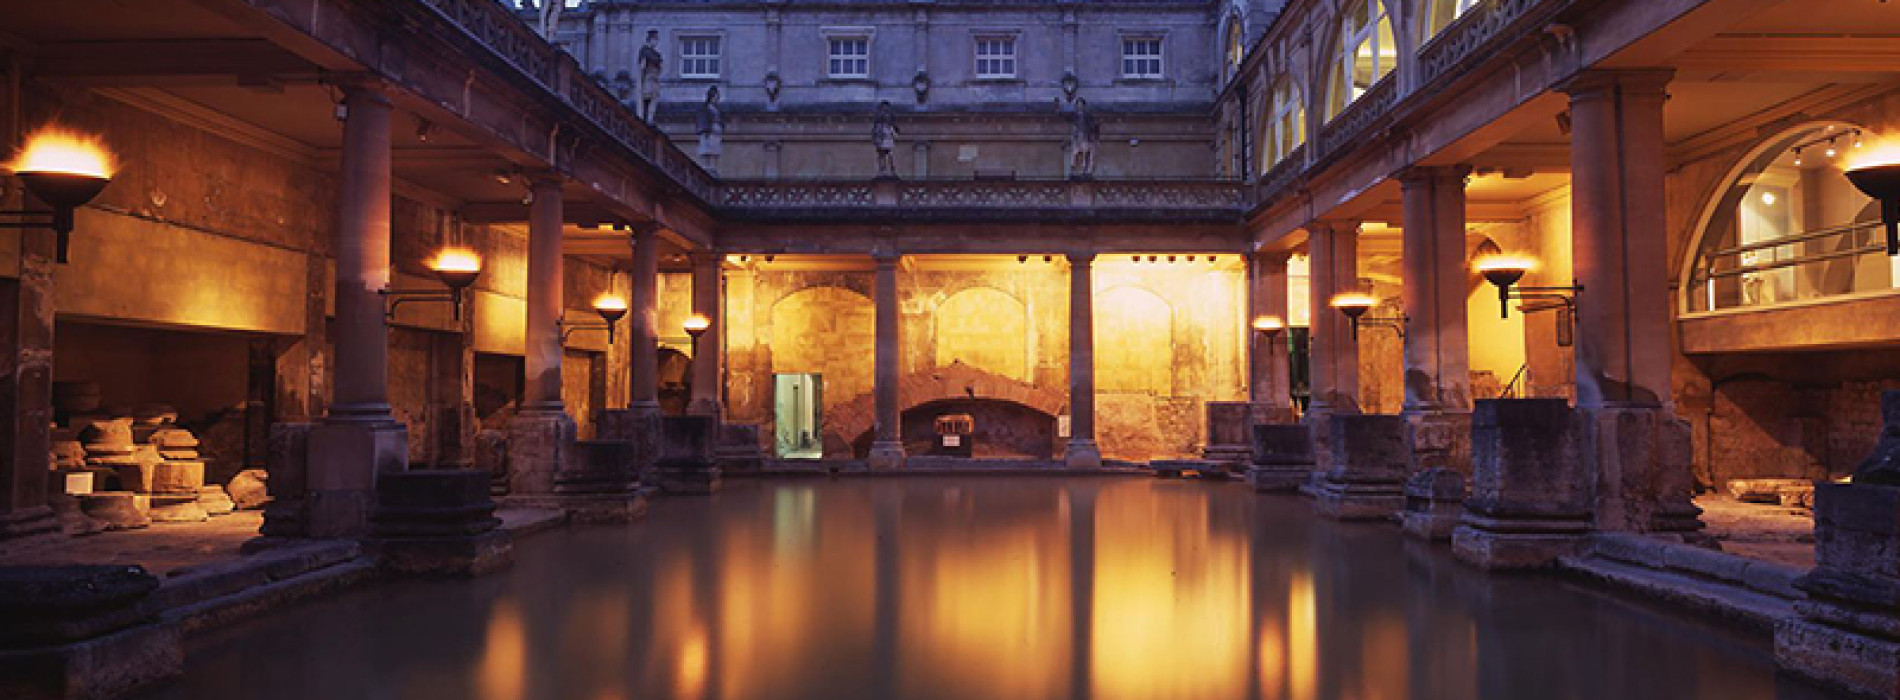 Roman Baths and Pump Room: accessible history in action | Disability ...